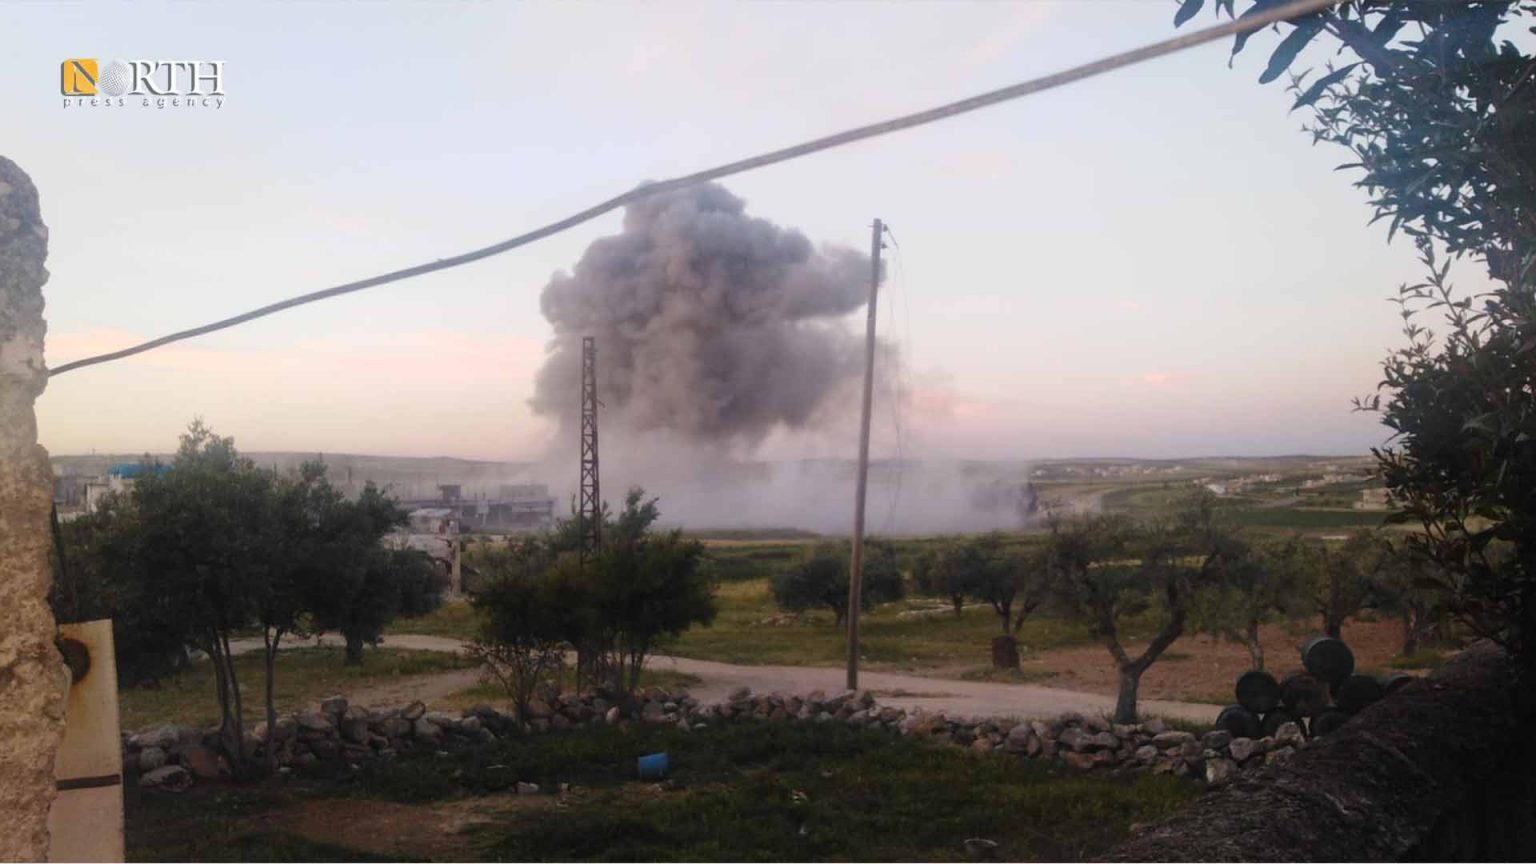 On Monday, Damascus government forces bombed Turkish-backed Syrian armed opposition factions around Idleb and Lattakia, resulting in material damages, according to North Press.